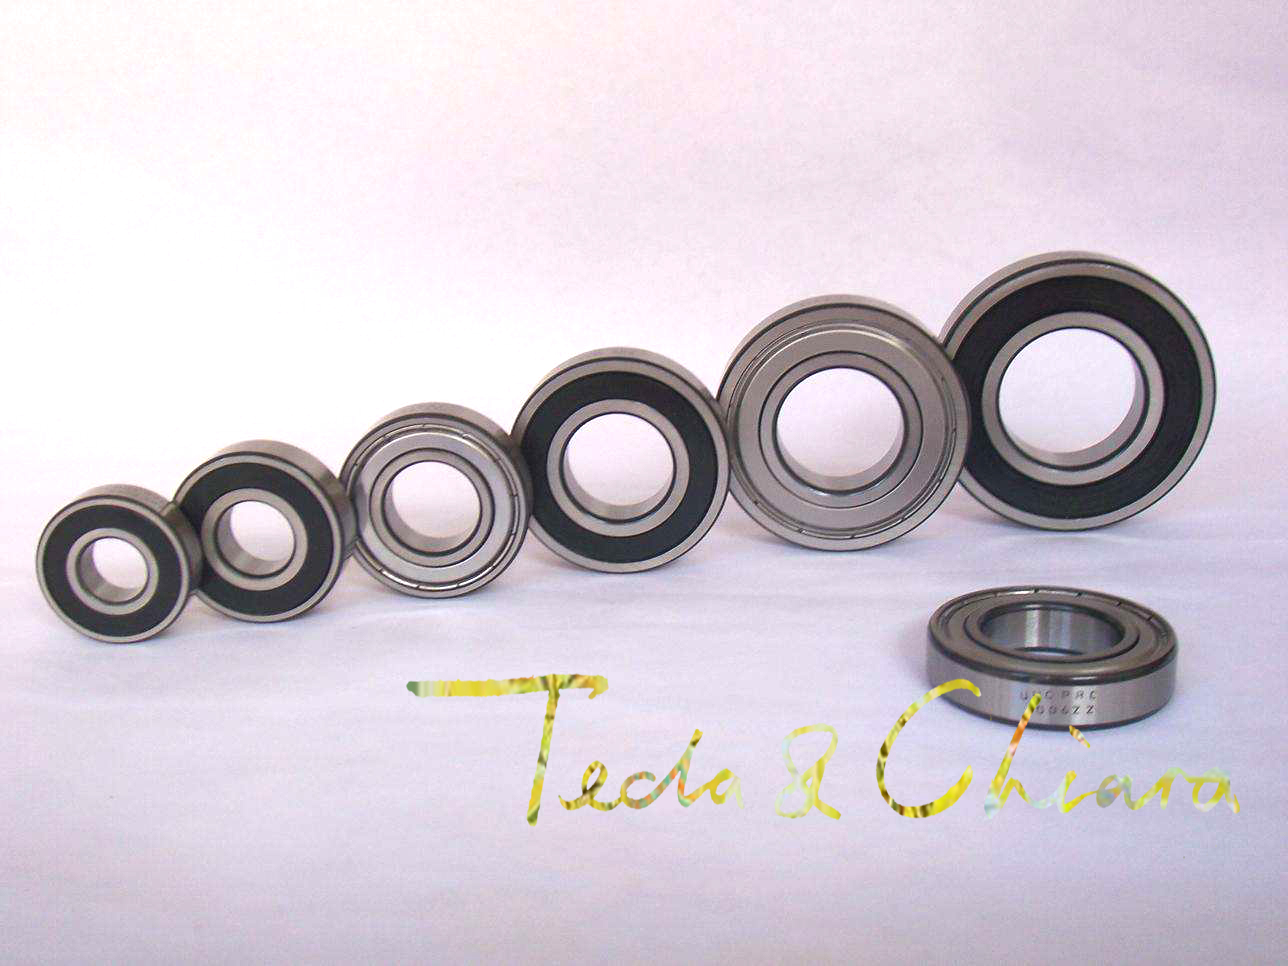 6707 6707ZZ 6707RS 6707-2Z 6707Z 6707-2RS ZZ RS RZ 2RZ Deep Groove Ball Bearings 35 x 44 x 5mm High Quality free shipping 25x47x12mm deep groove ball bearings 6005 zz 2z 6005zz bearing 6005zz 6005 2rs